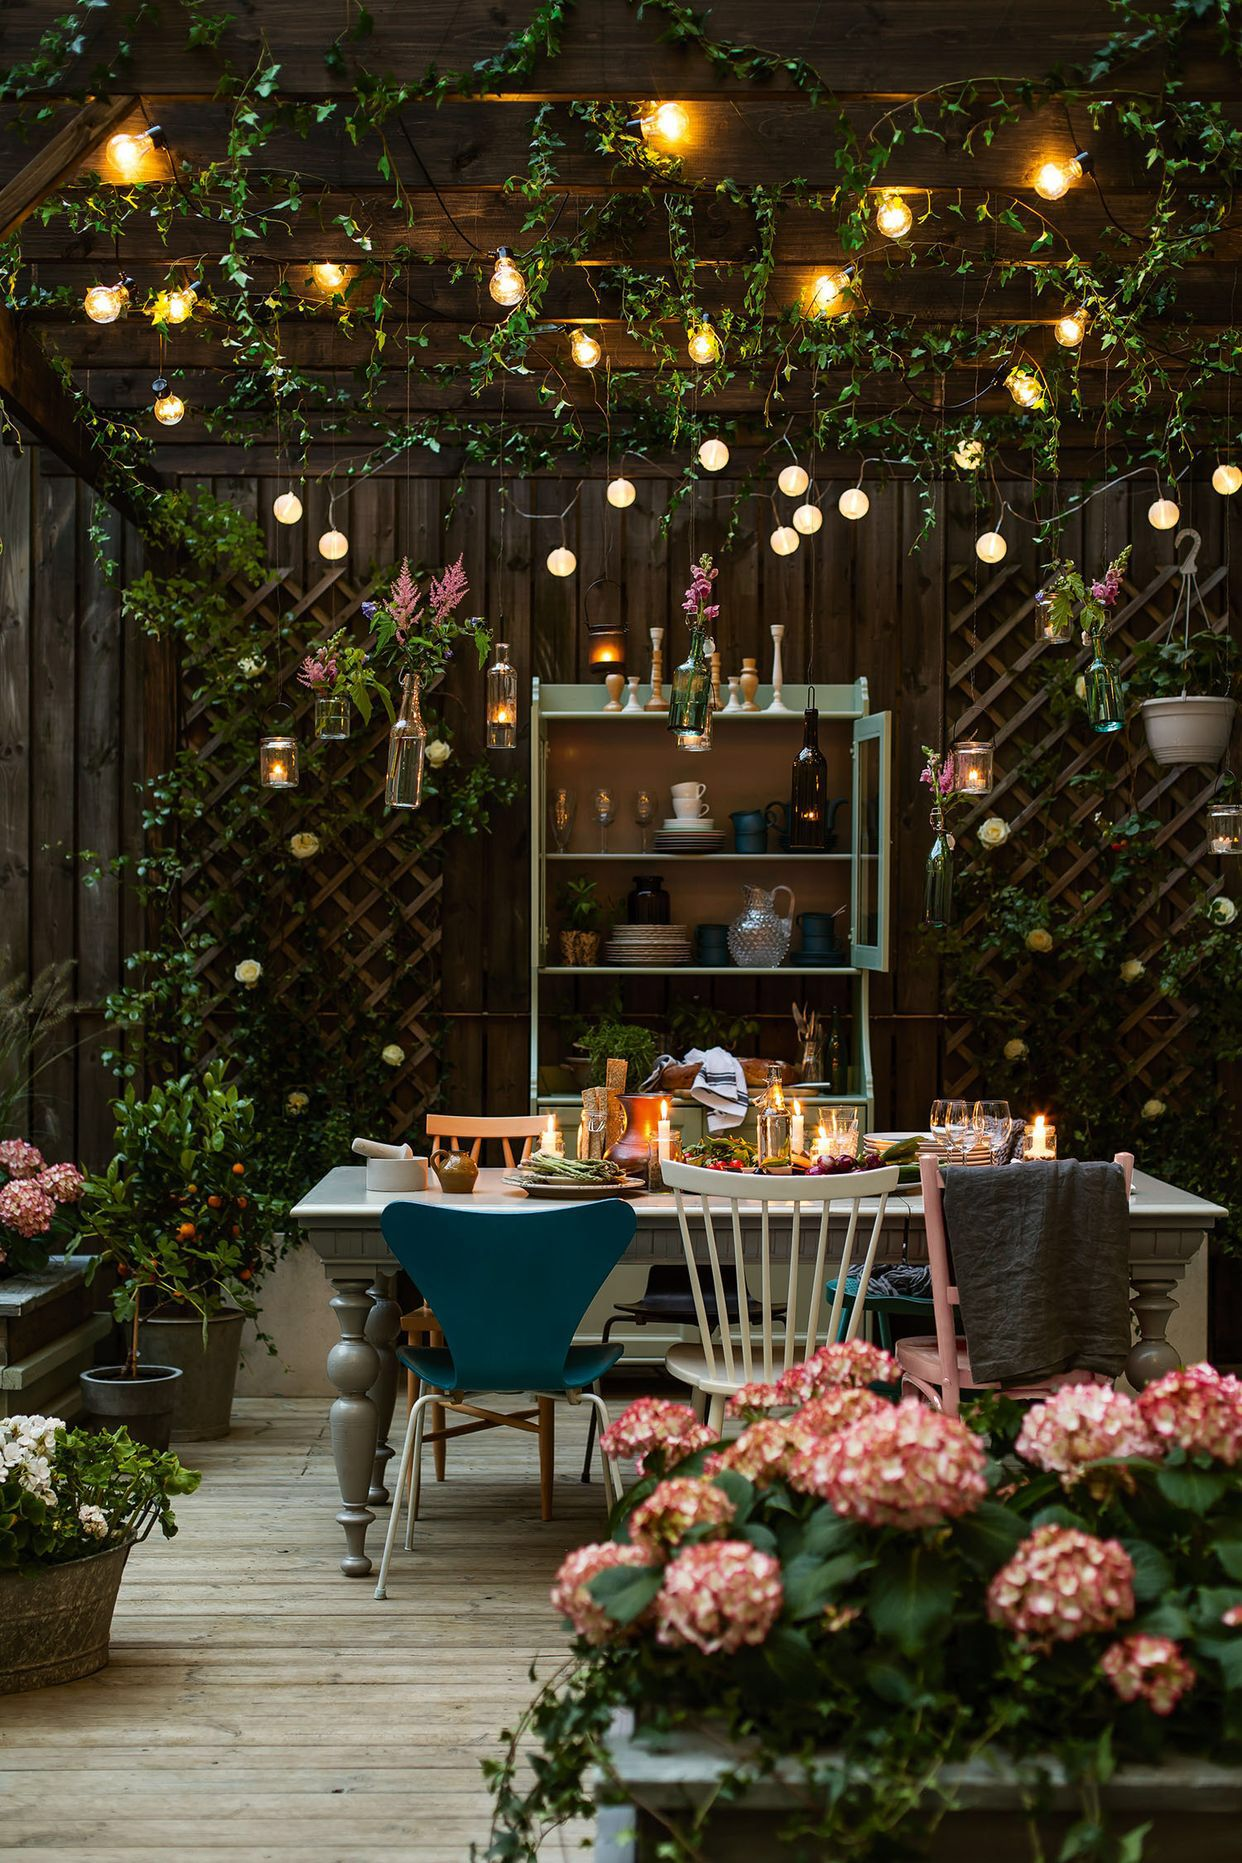 Attirant Backyard With Canopy Of Twinkle Lights And Wooden Dining Table With  Mismatched Chairs, Pink Flowers   Sarah Widman + Cuprinol   Fixaodona.